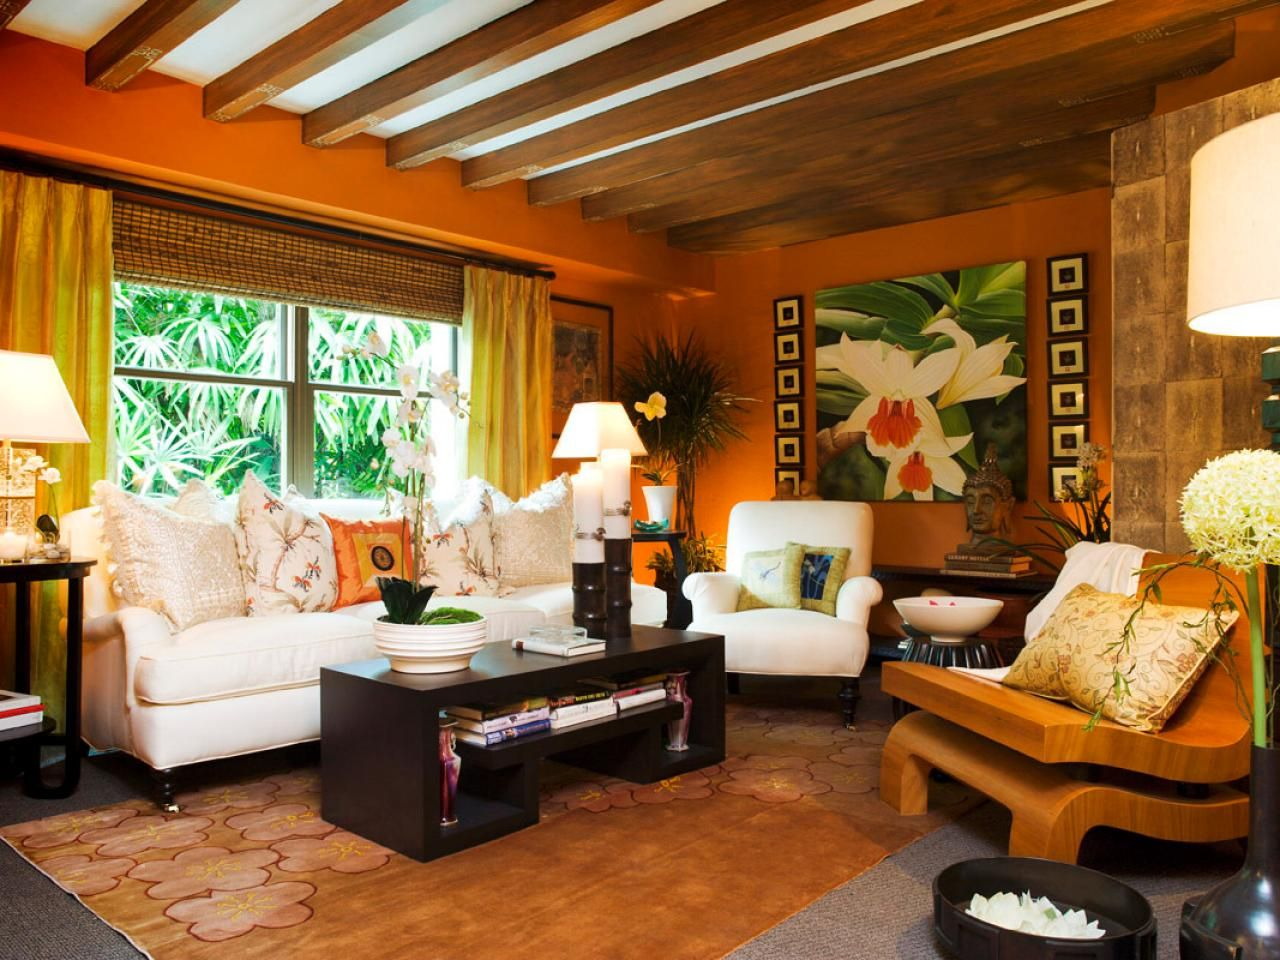 The Rich Orange Color Tropical Decor And Exposed Beams Make This Gorgeous Hgtv Living Room Design Ideas Inspiration Design